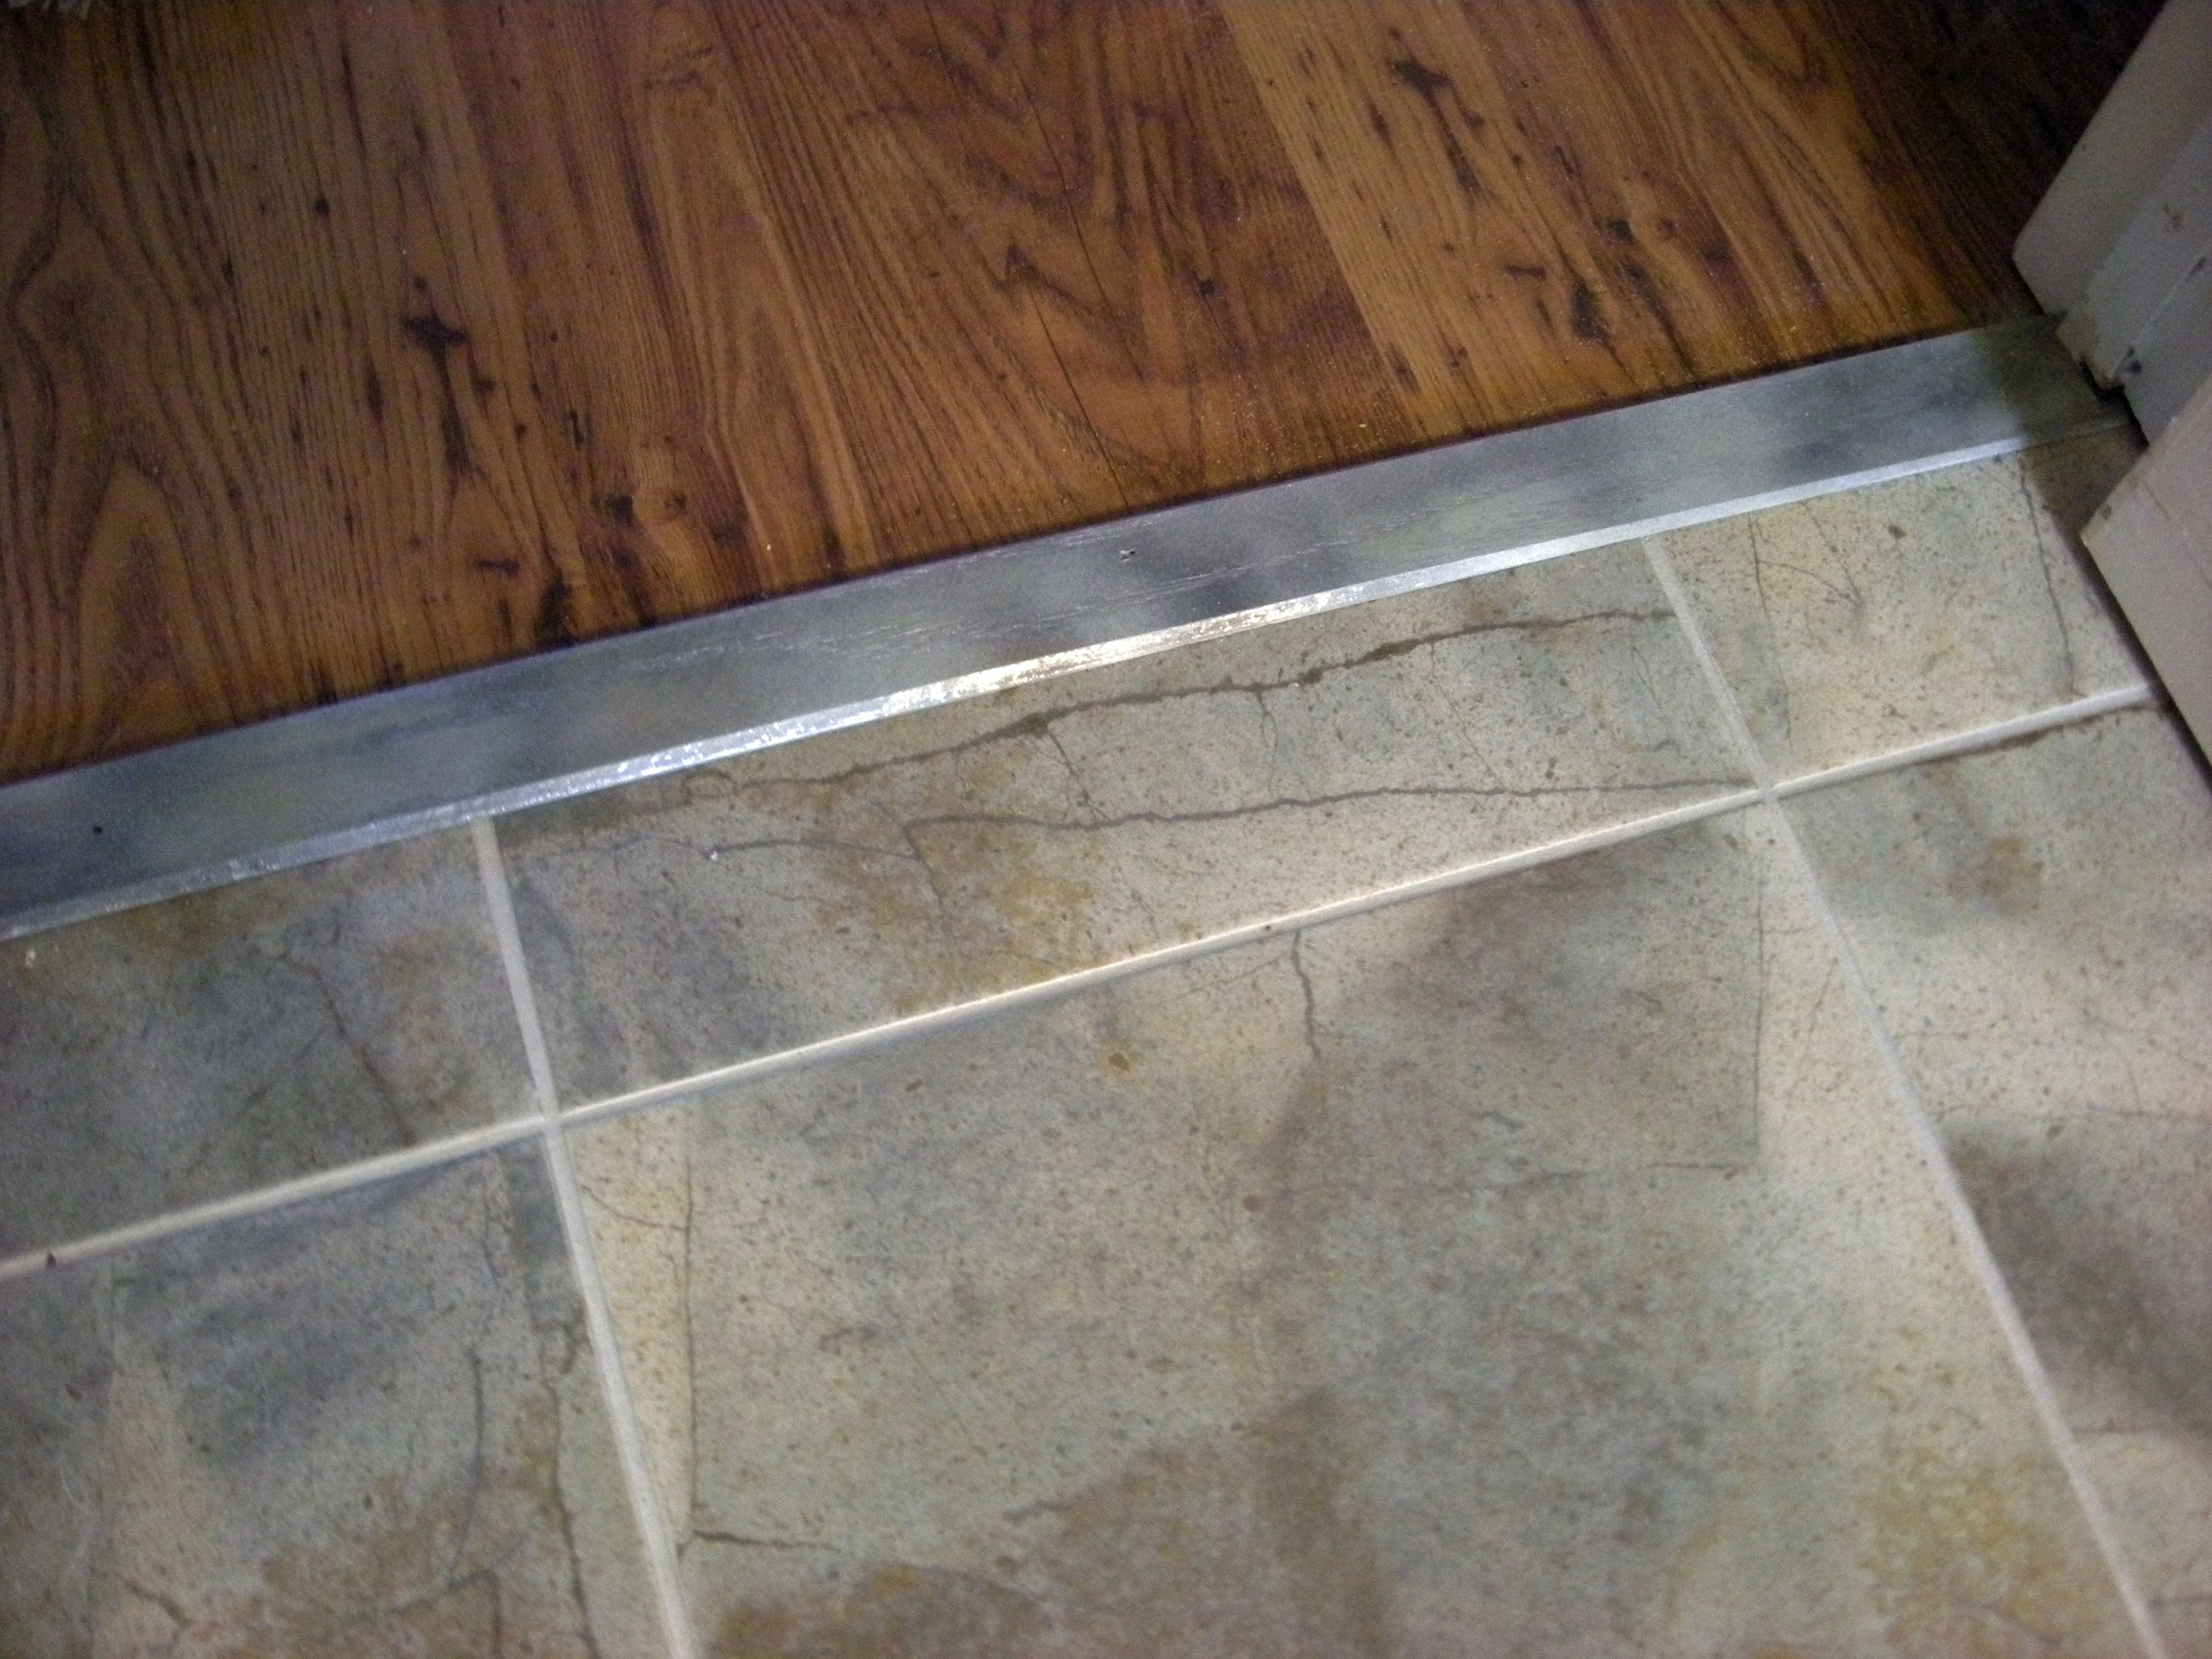 Kitchen floor tiles wickes httpnextsoft21 pinterest kitchen floor tiles wickes dailygadgetfo Image collections